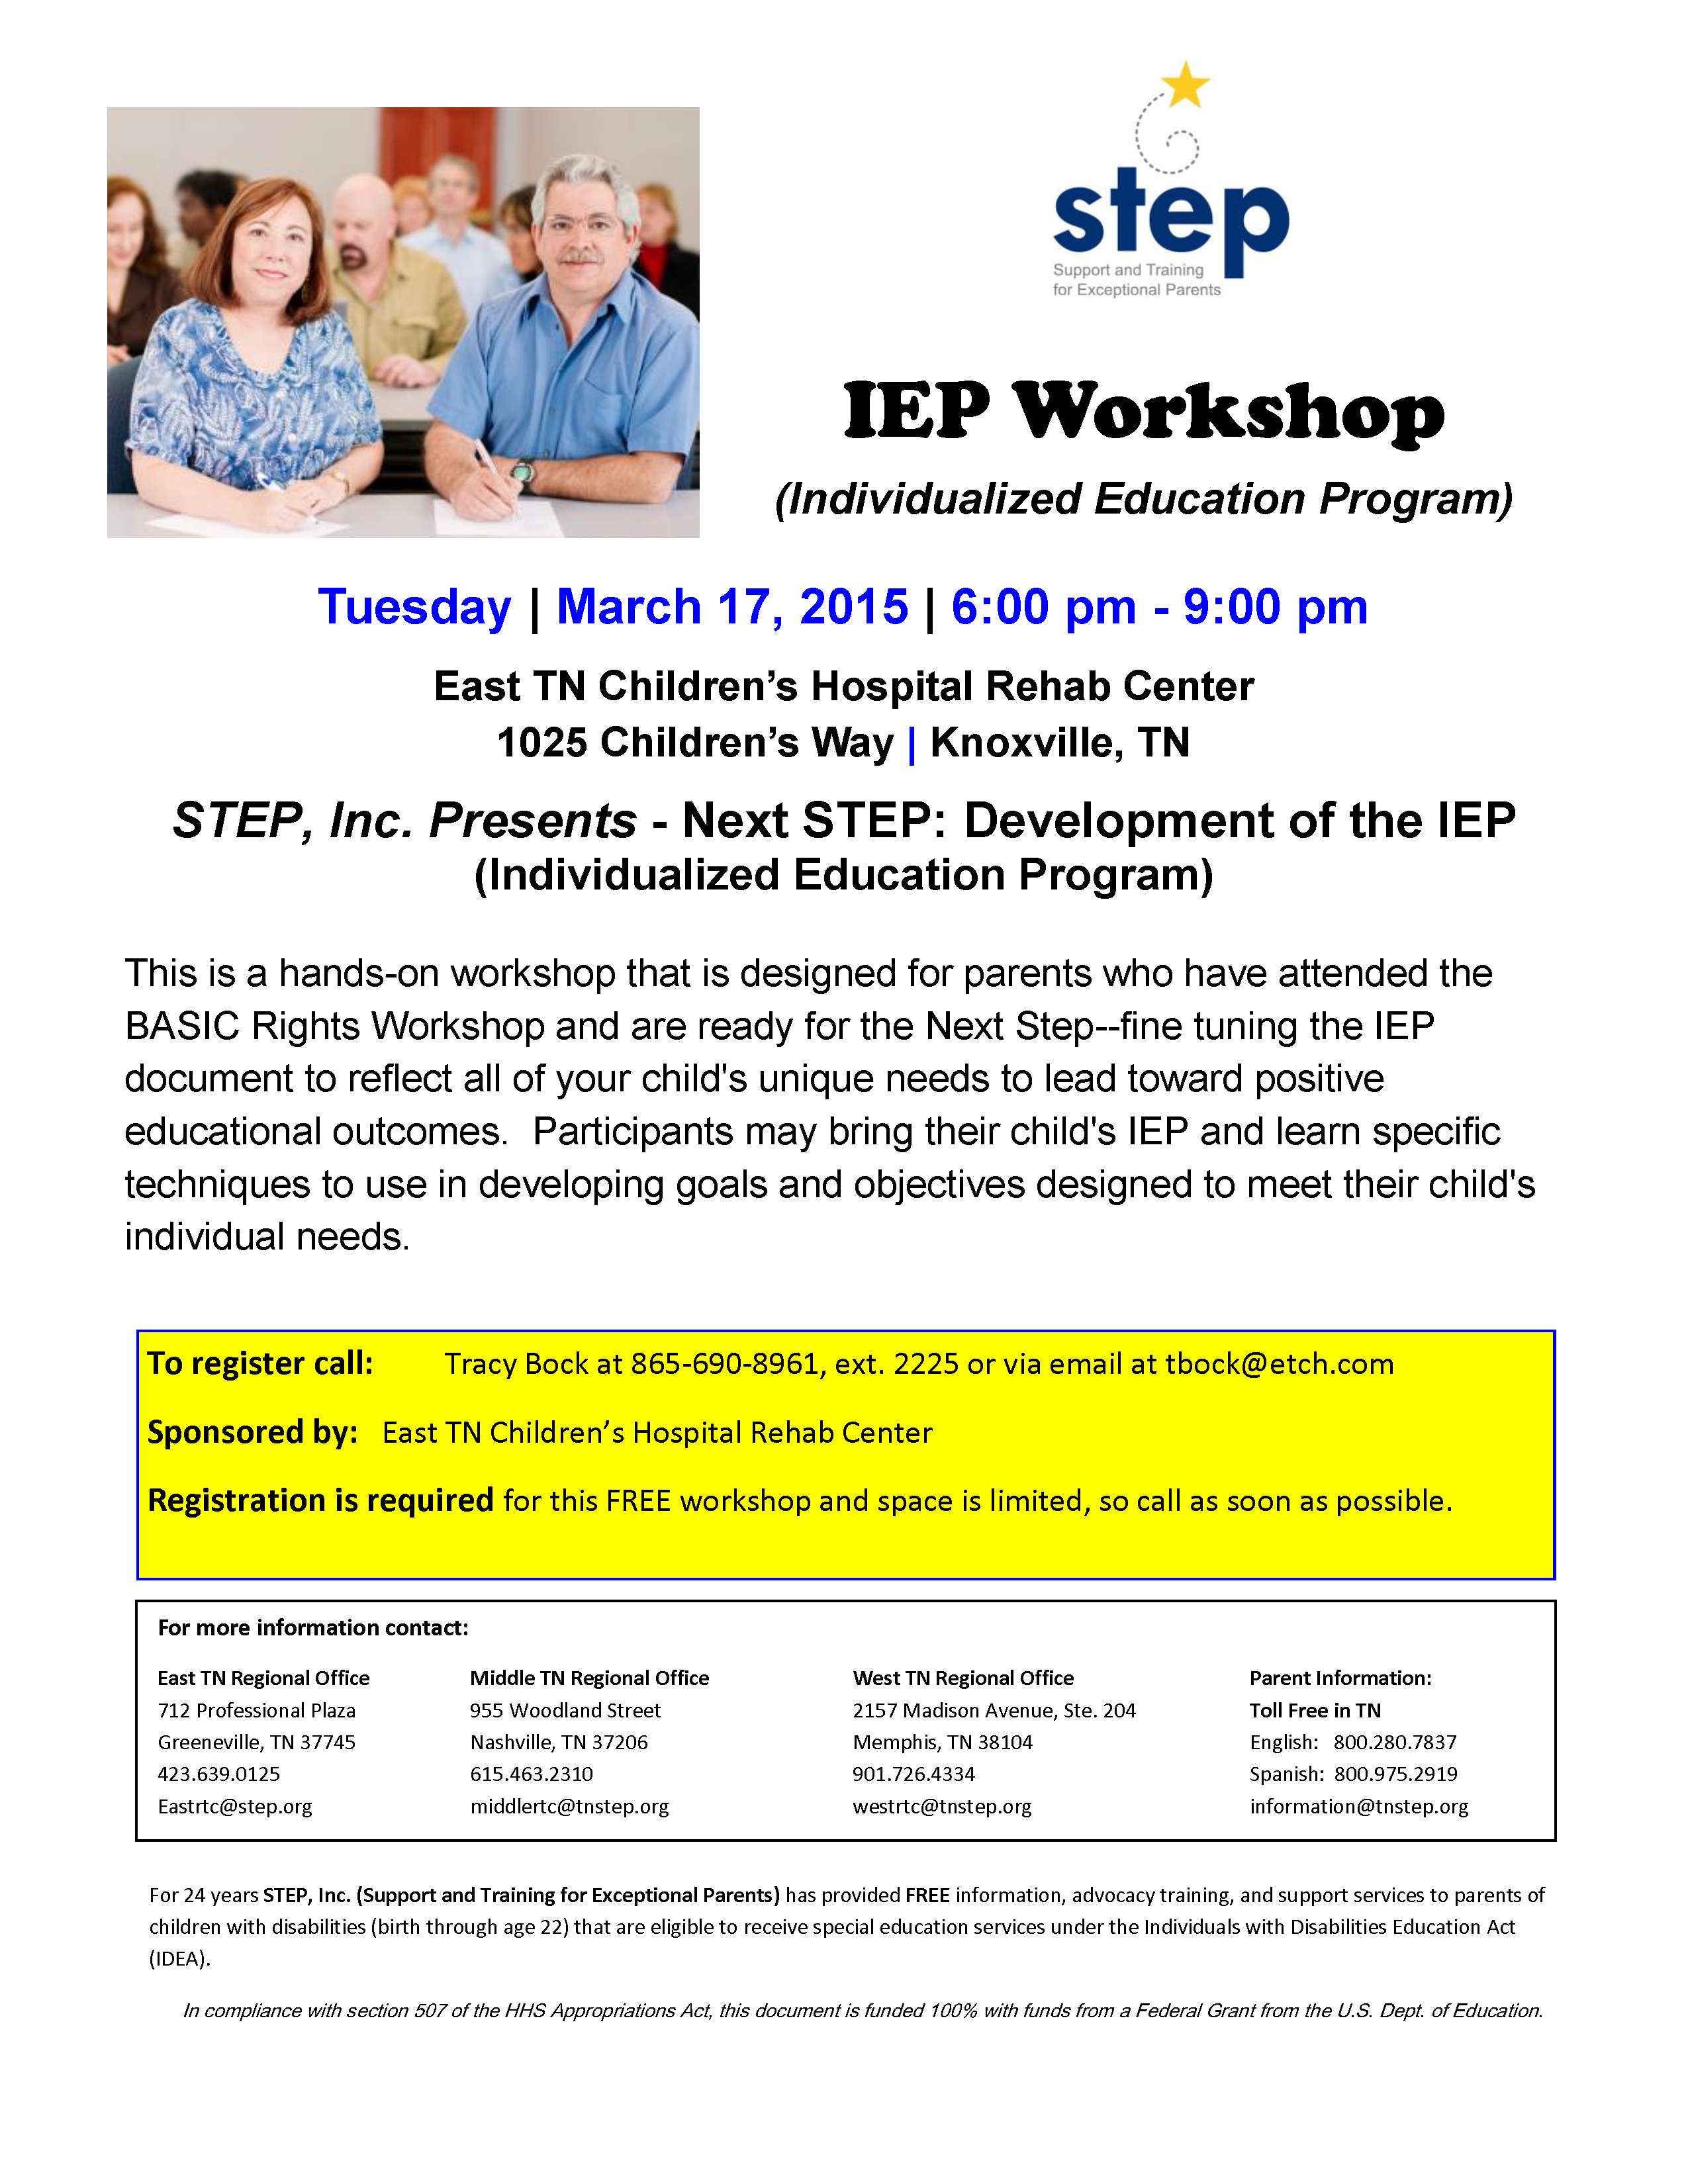 Individualized Education Programs Ieps For Parents Kidshealth >> March 17 2015 Step Inc Presents Next Step Development Of The